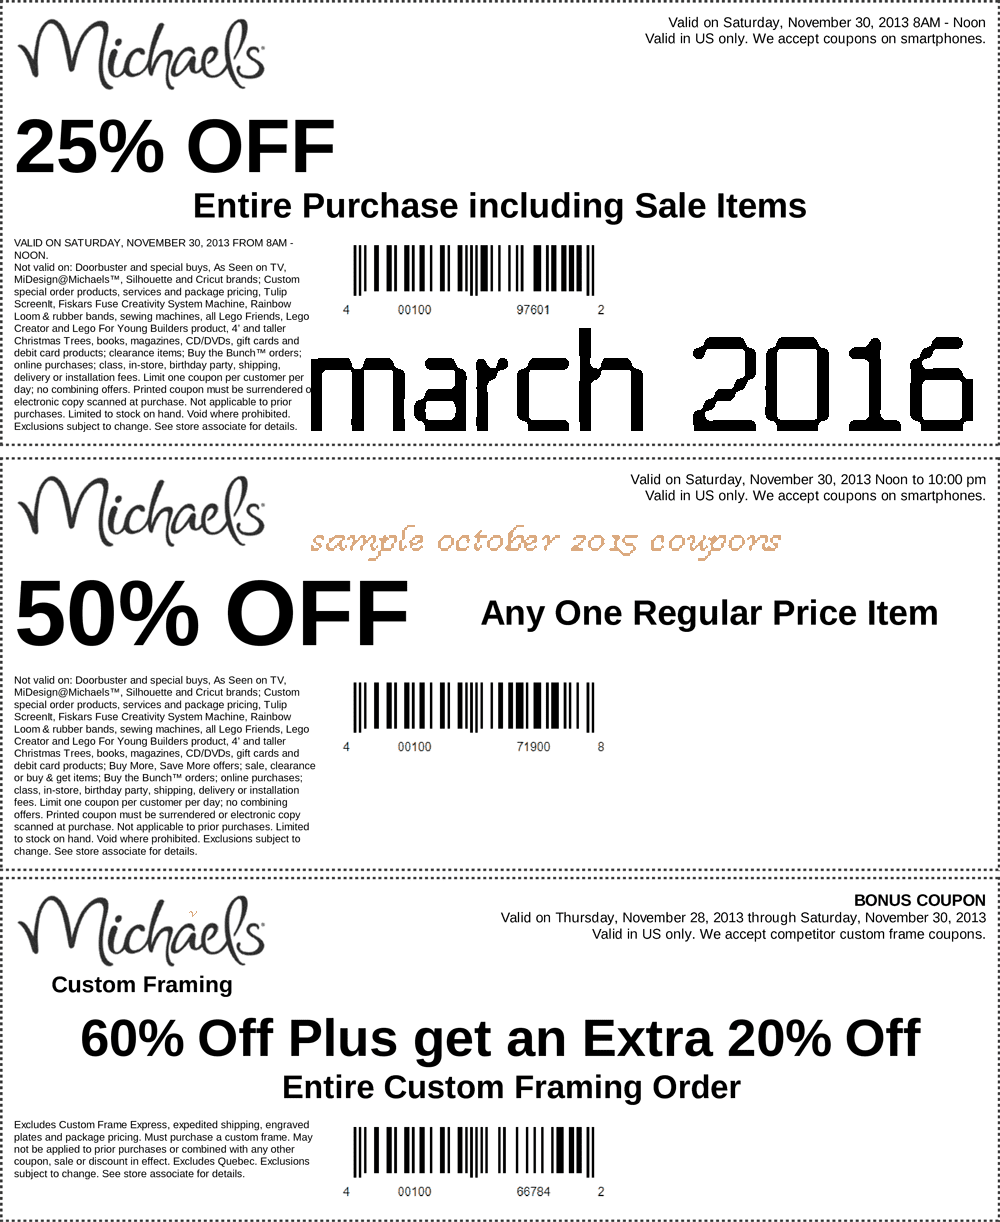 Michael discount coupons